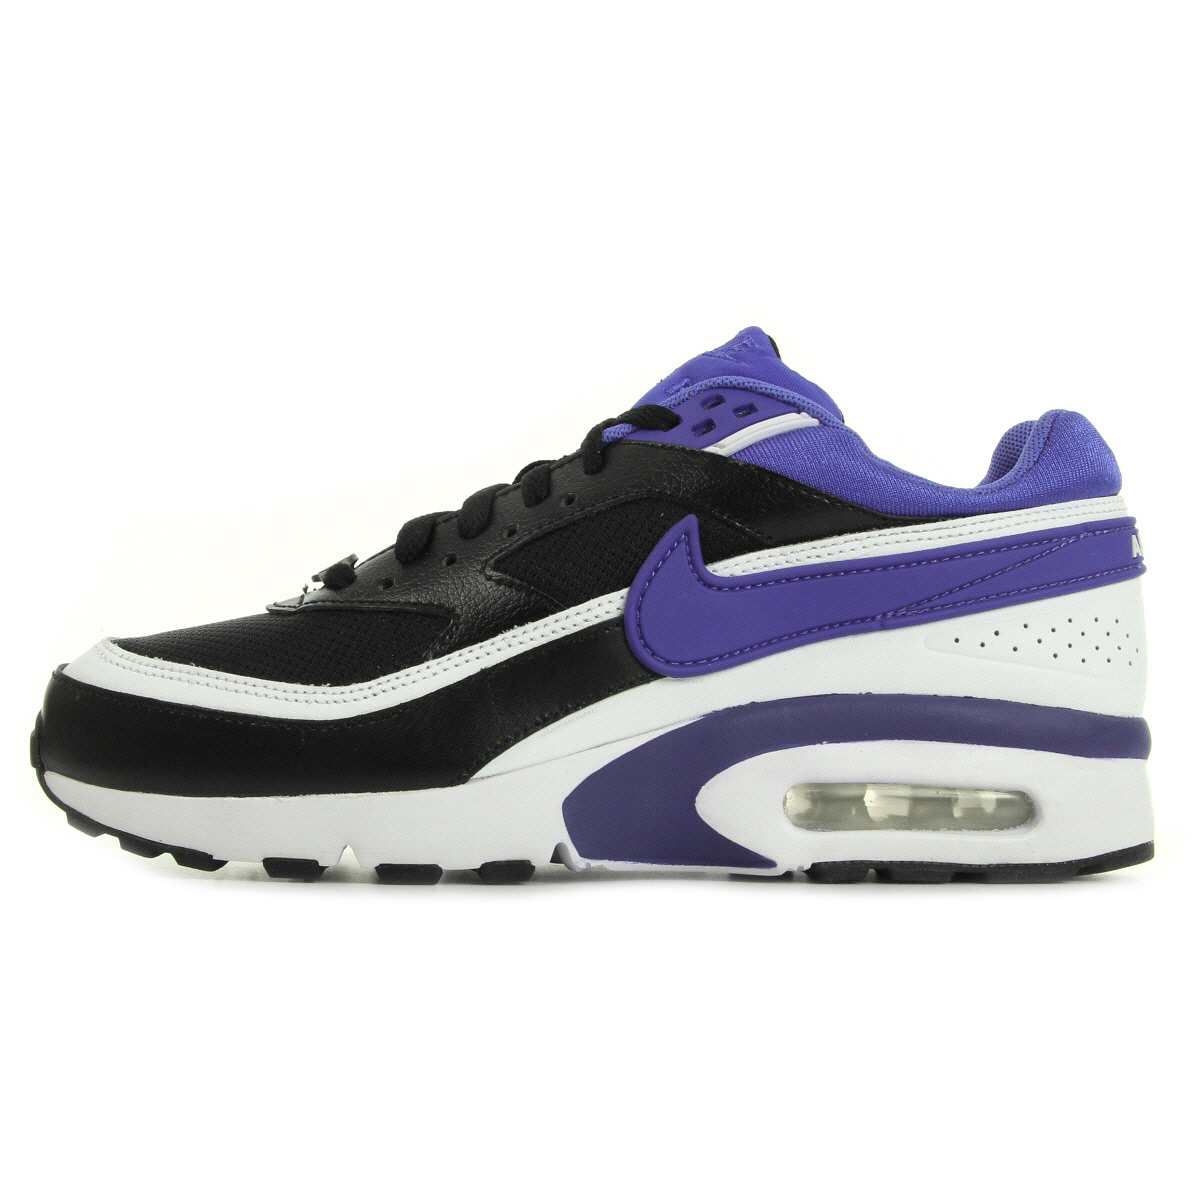 nike air max classic bw 820344051 chaussures homme homme. Black Bedroom Furniture Sets. Home Design Ideas